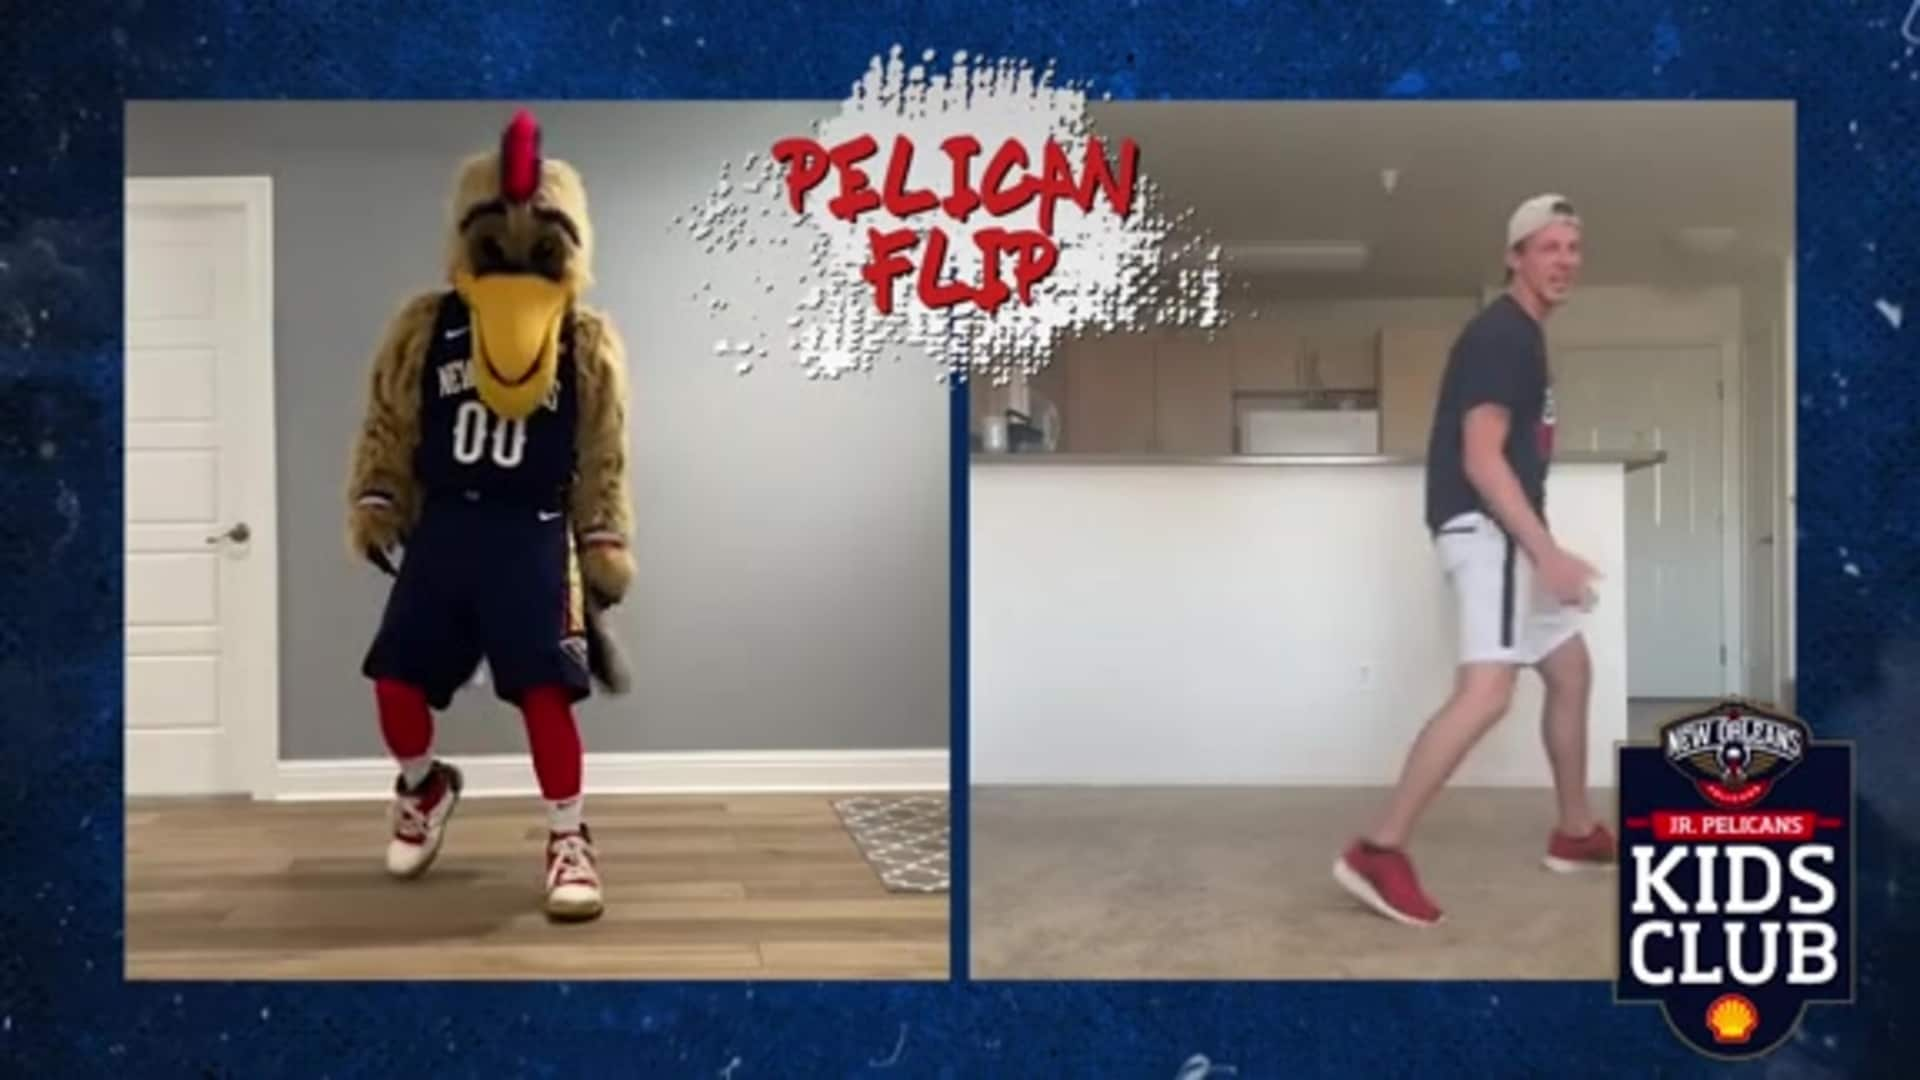 Pelicans Jr. Kids Club: Learn Breakdancing Moves with Pierre